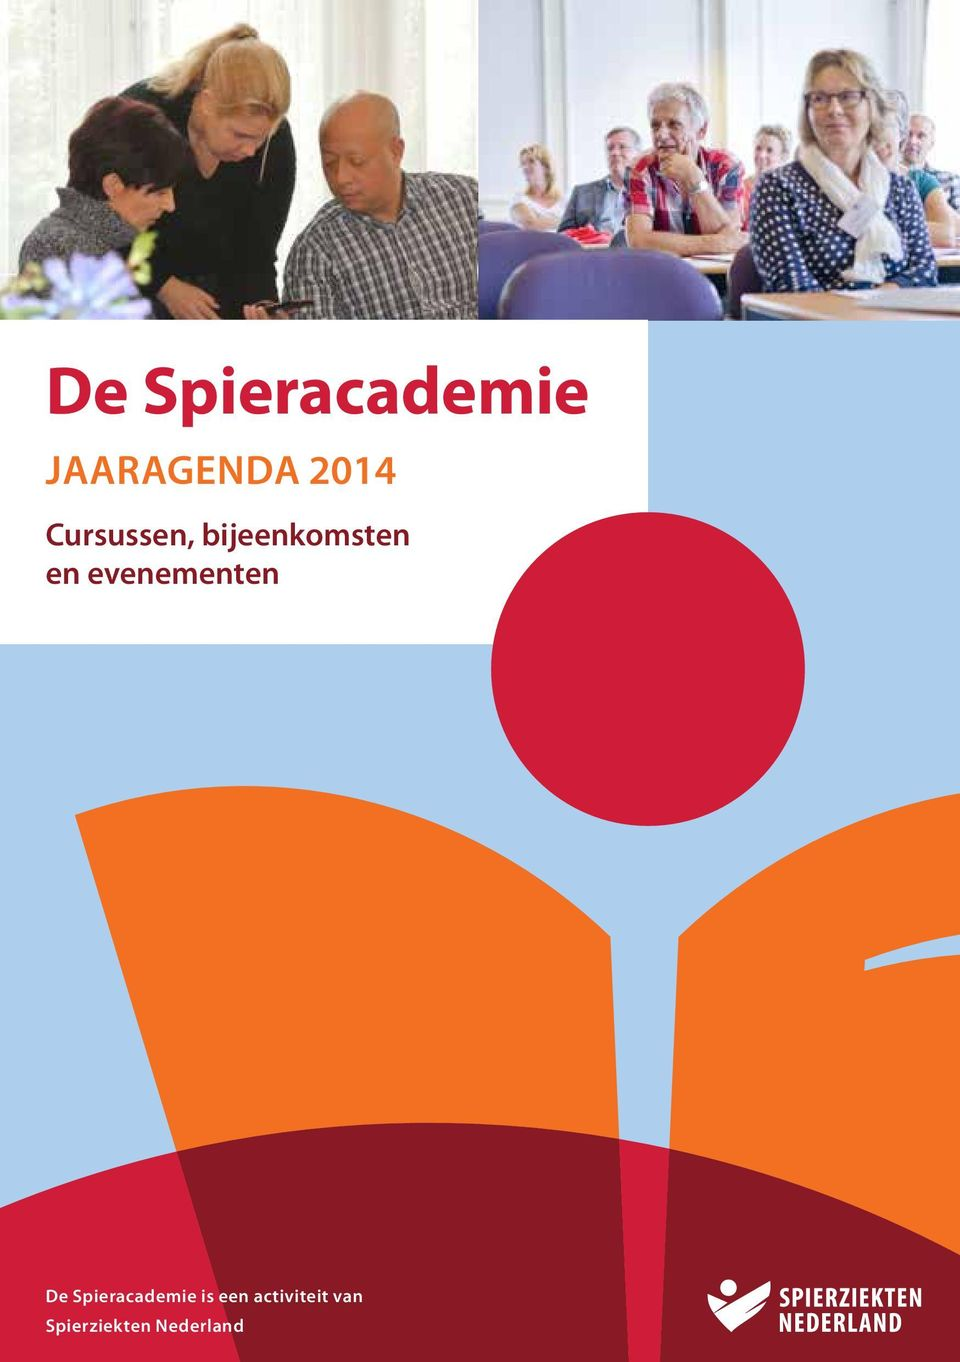 evenementen De Spieracademie is